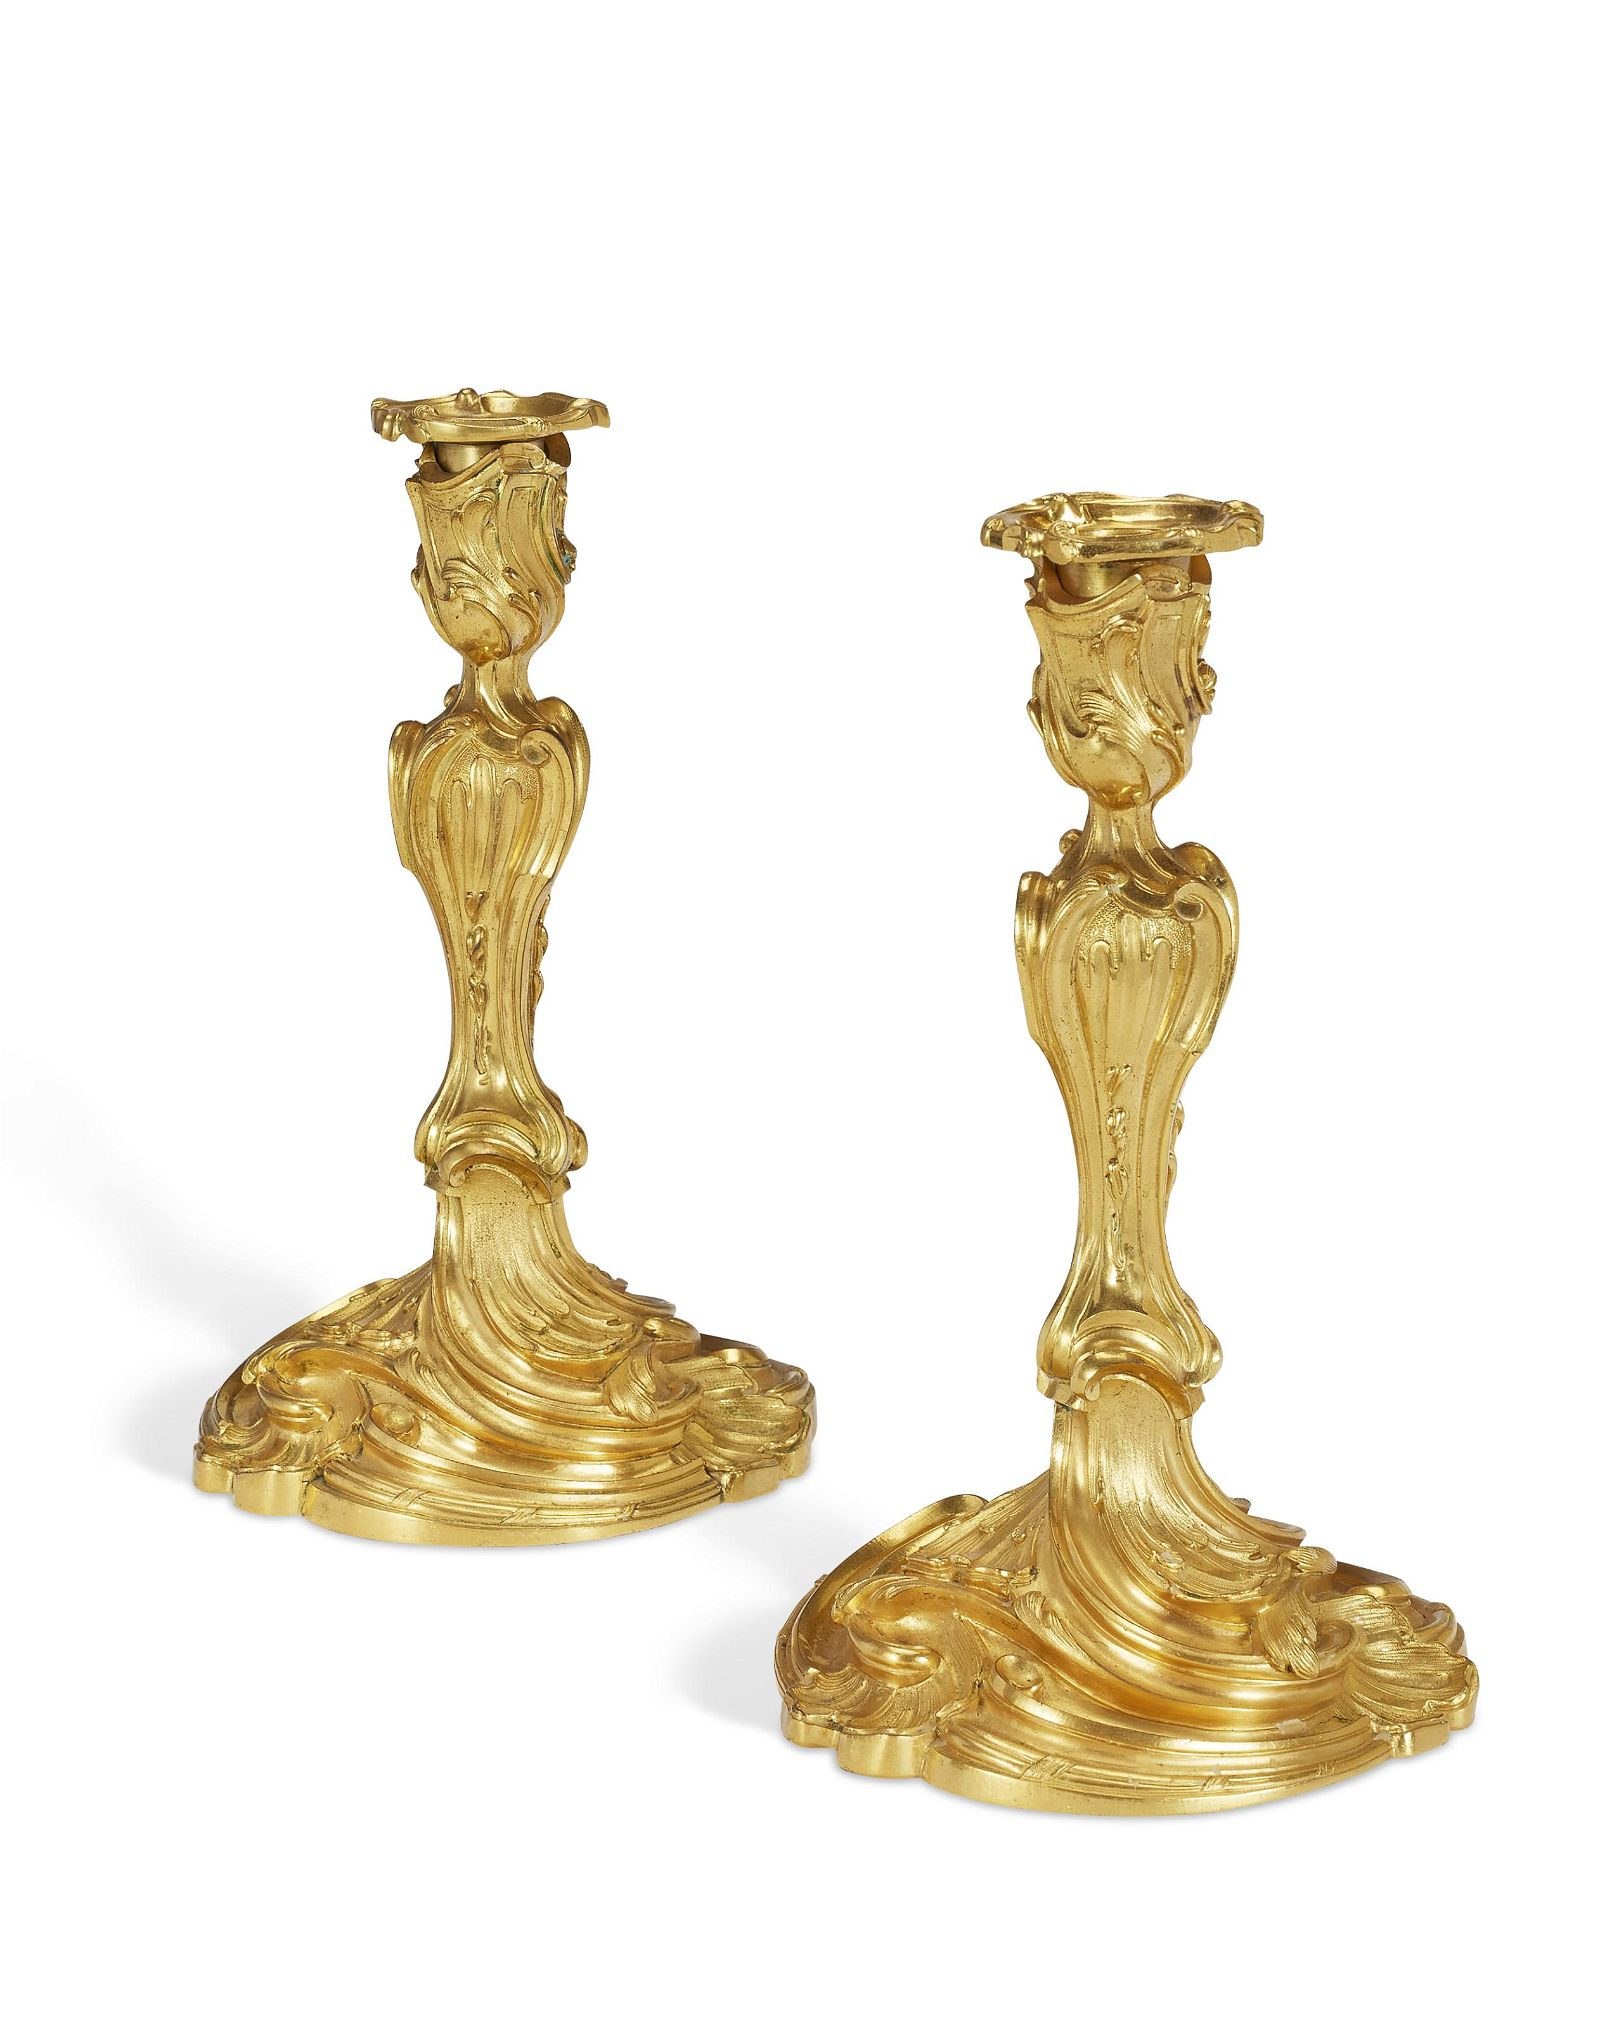 A PAIR OF FRENCH ORMOLU CANDLESTICKS